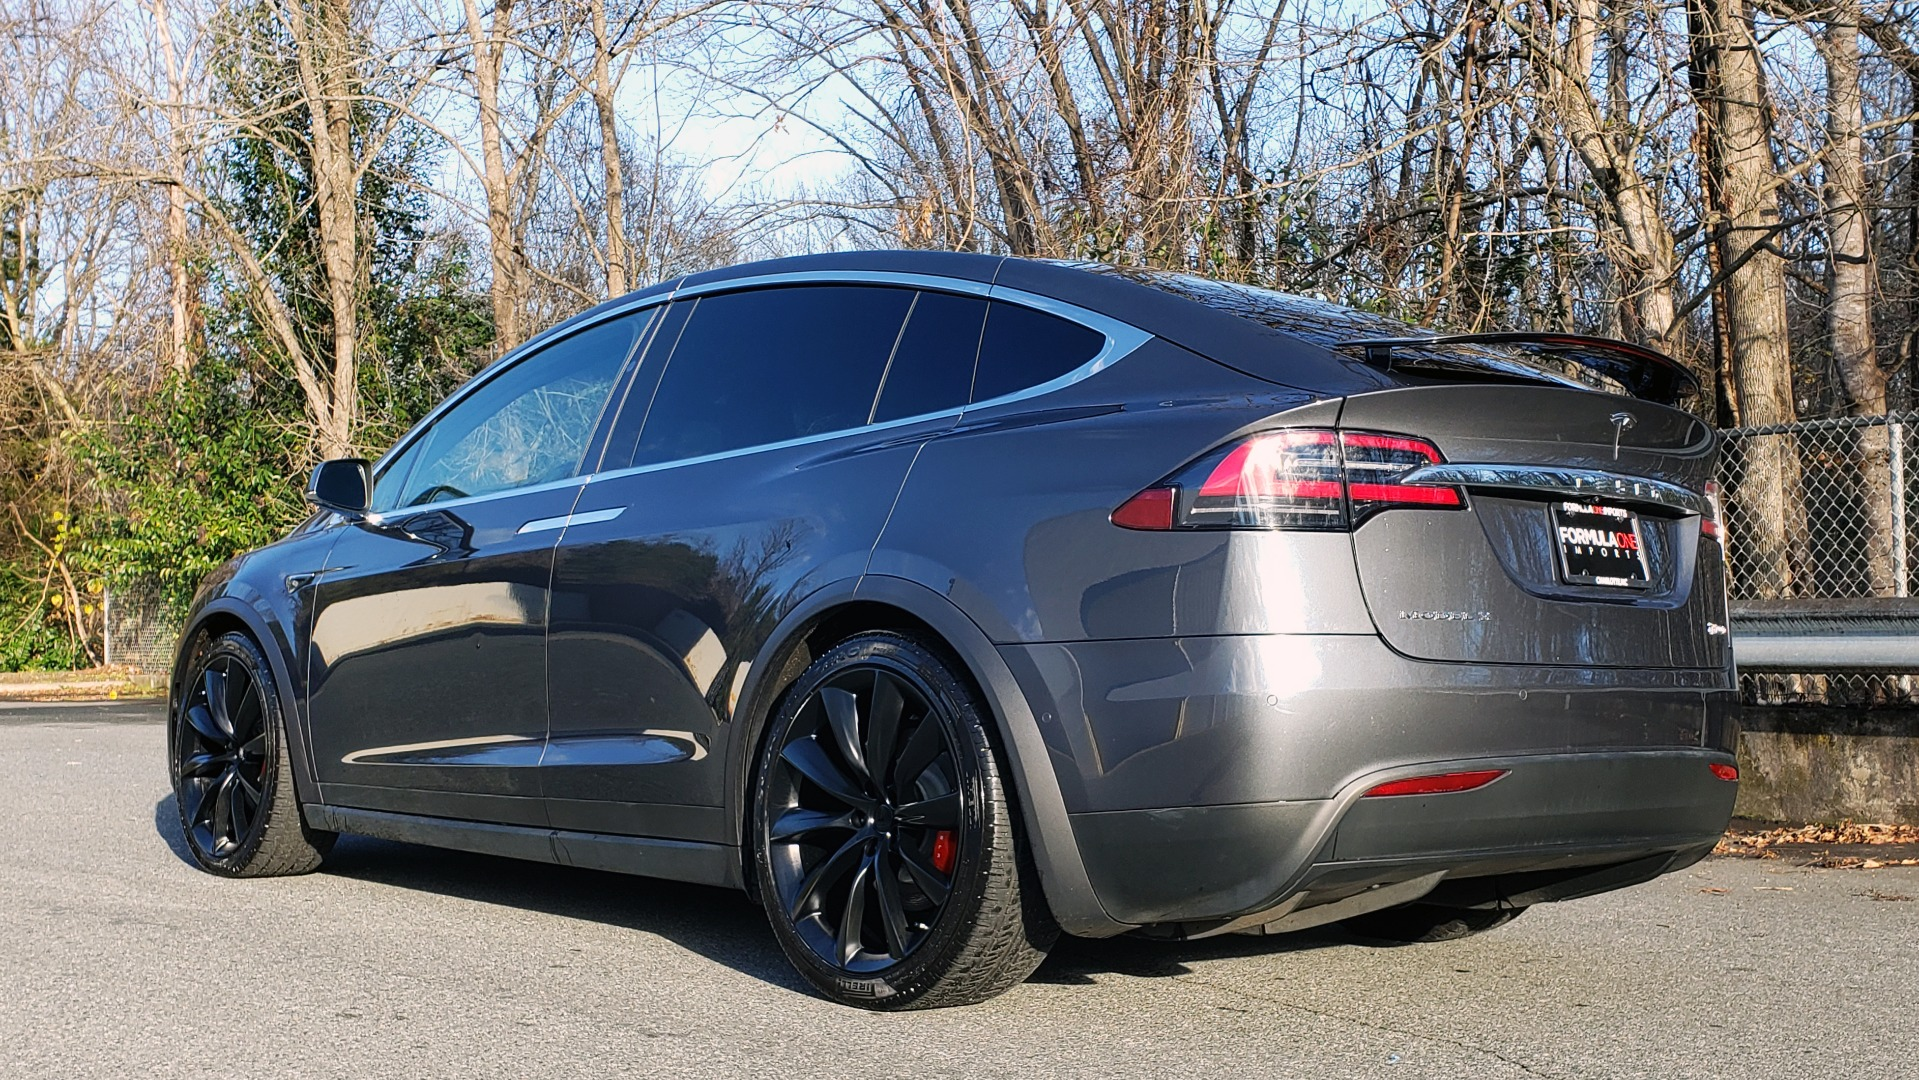 Used 2016 Tesla MODEL X P100D LUDICROUS PERF / PREM / TECH / AUTO PILOT / TOWING for sale Sold at Formula Imports in Charlotte NC 28227 6